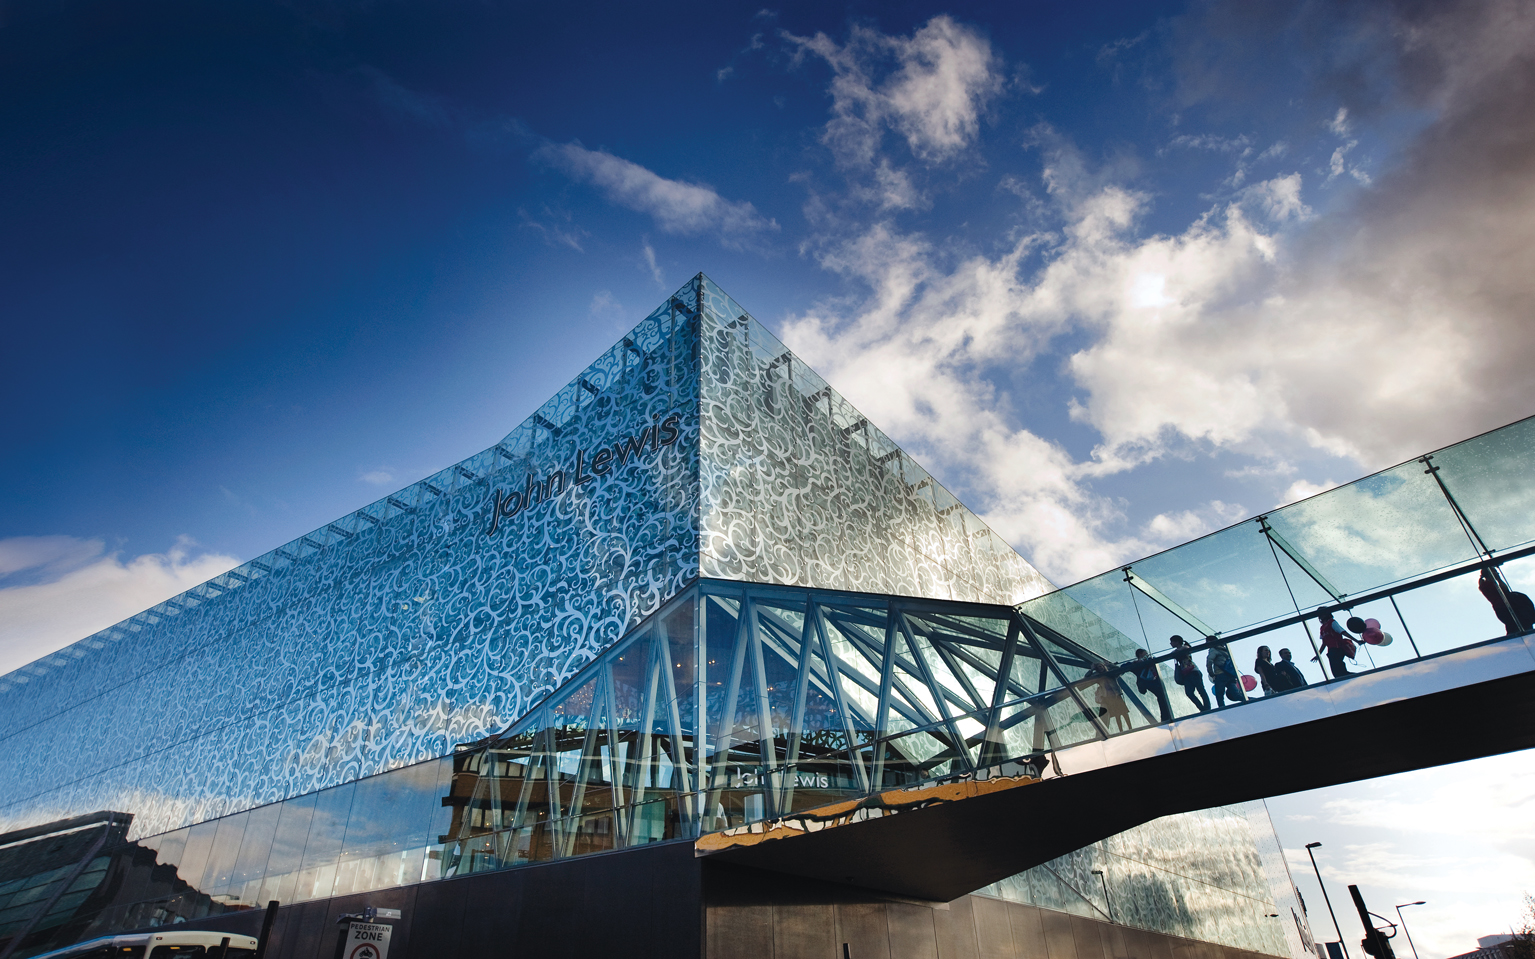 A building made of glass